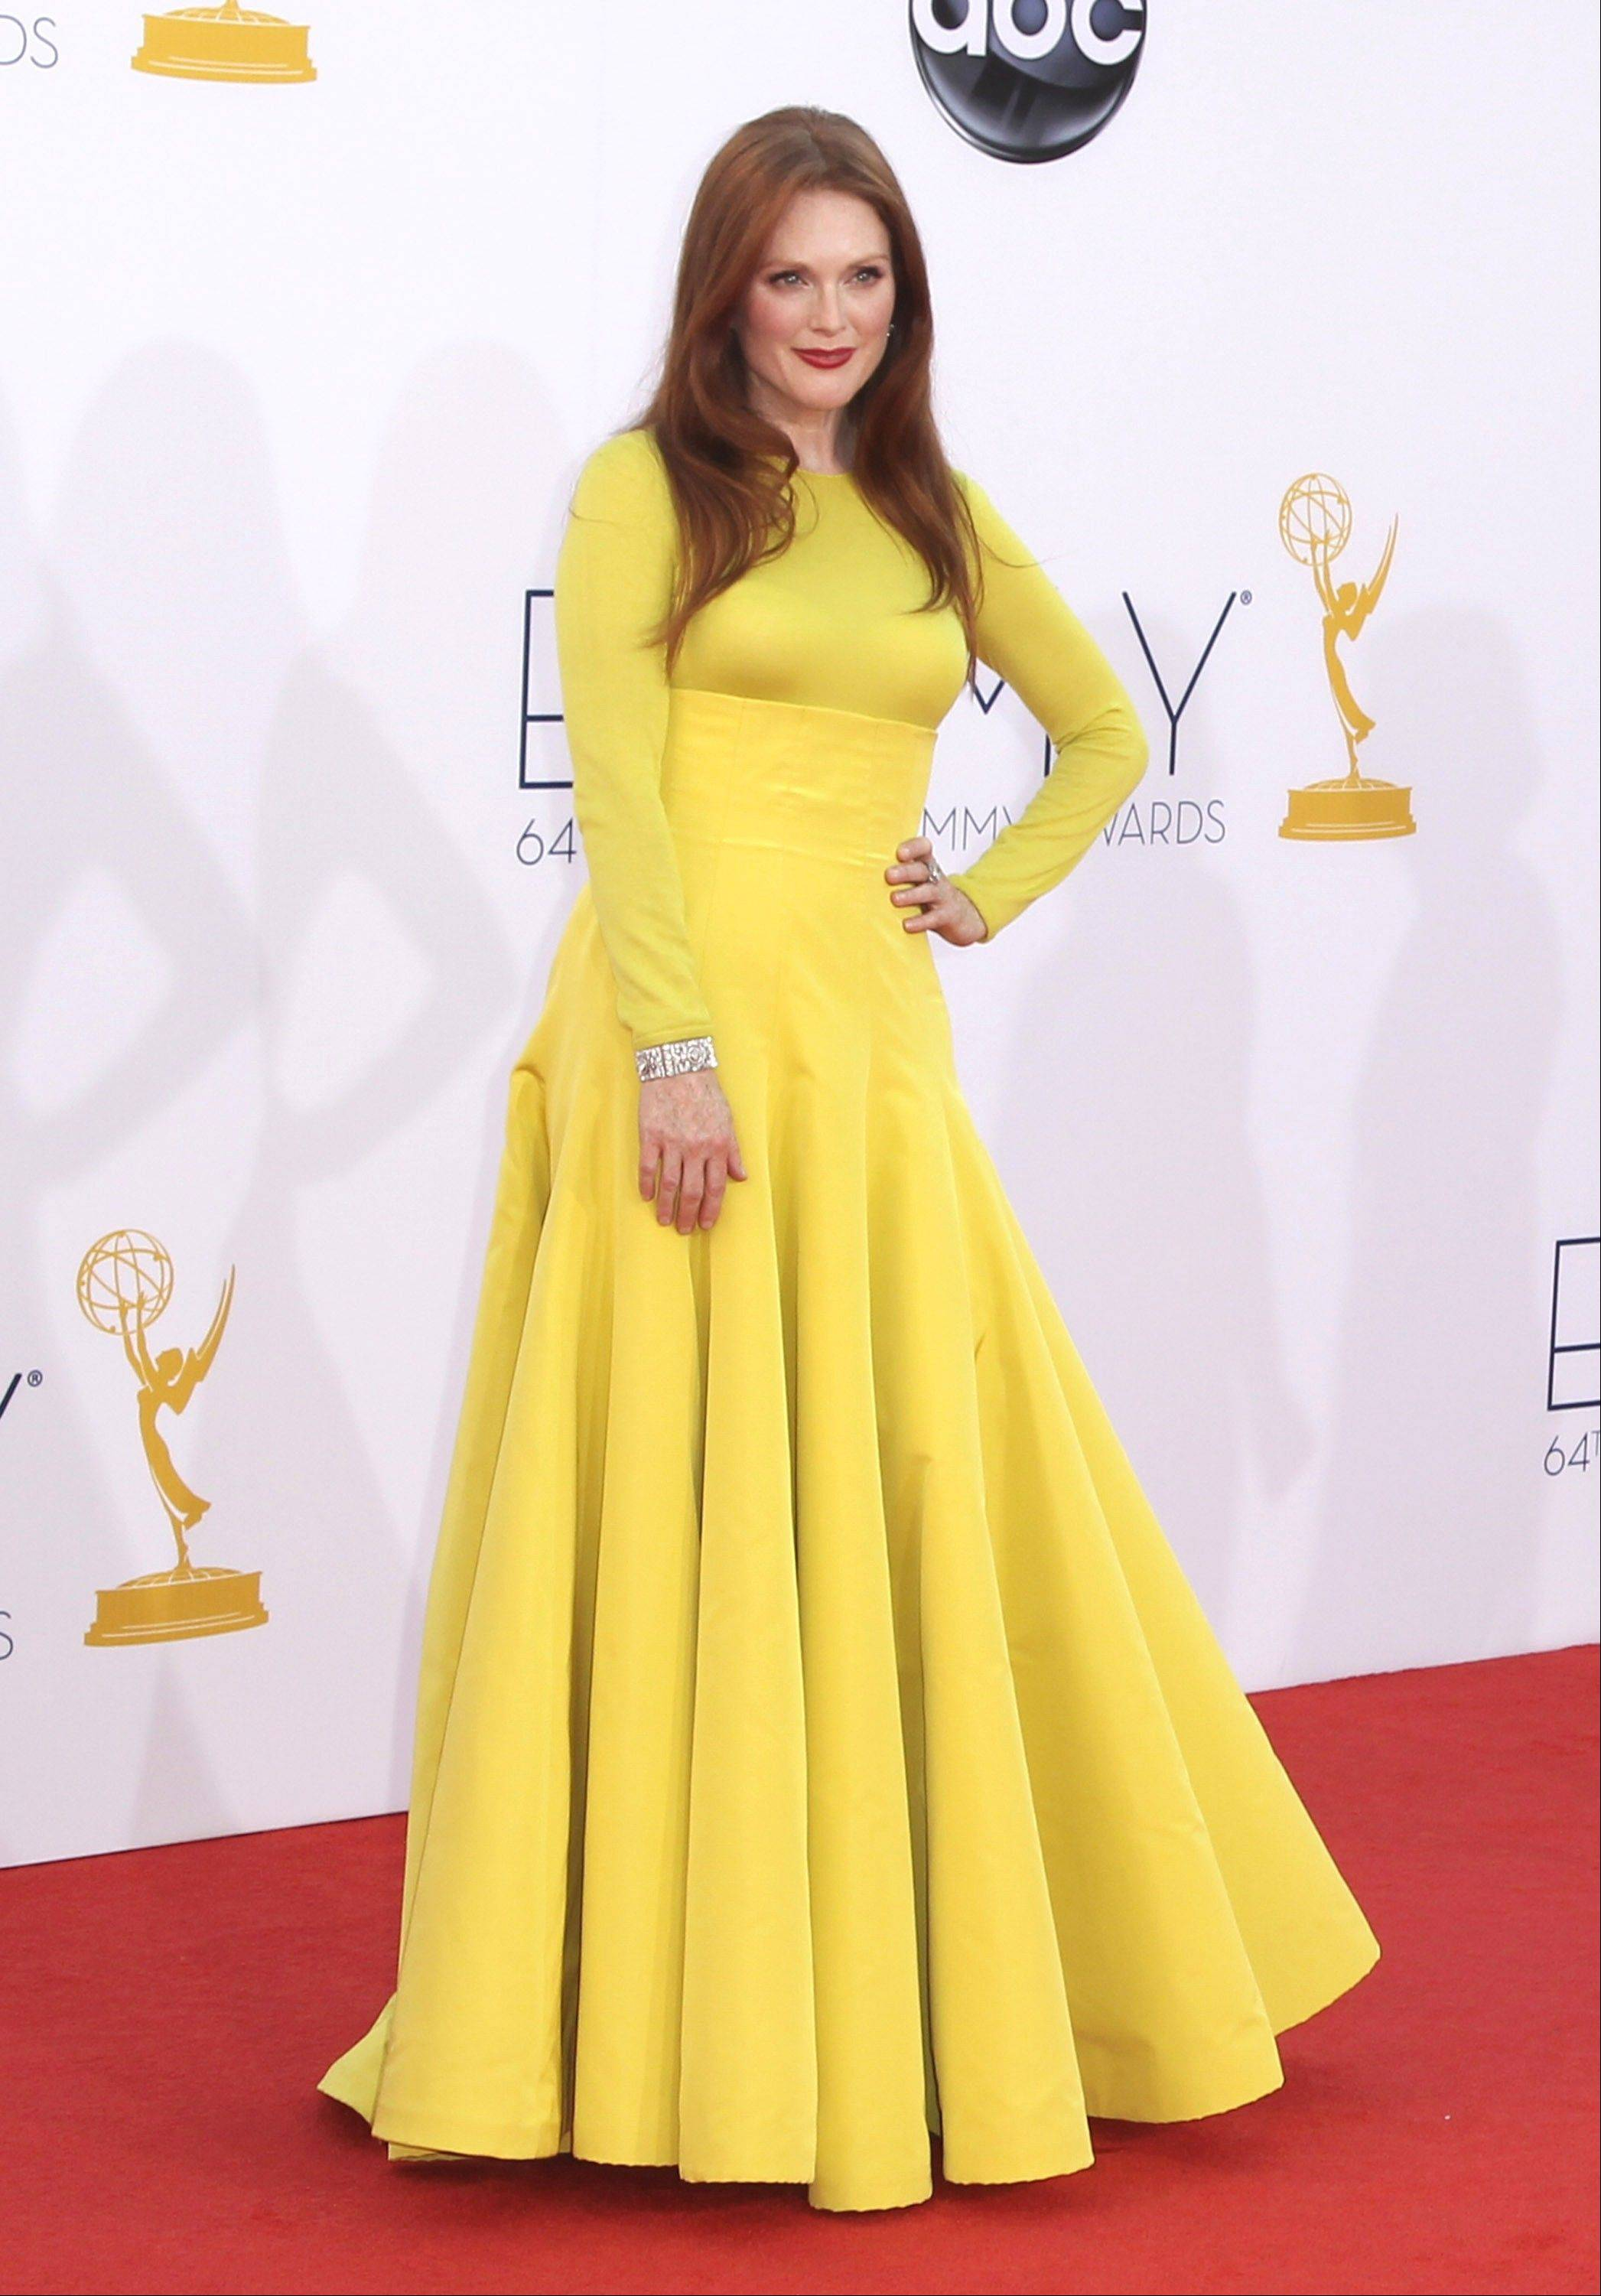 This Sept. 23, 2012 file photo shows actress Julianne Moore at the 64th Primetime Emmy Awards at the Nokia Theatre in Los Angeles. Moore's neon-yellow Dior Haute Couture outfit (really a sweater and ball skirt) spawned a love-it-or-hate-it debate among armchair style critics.